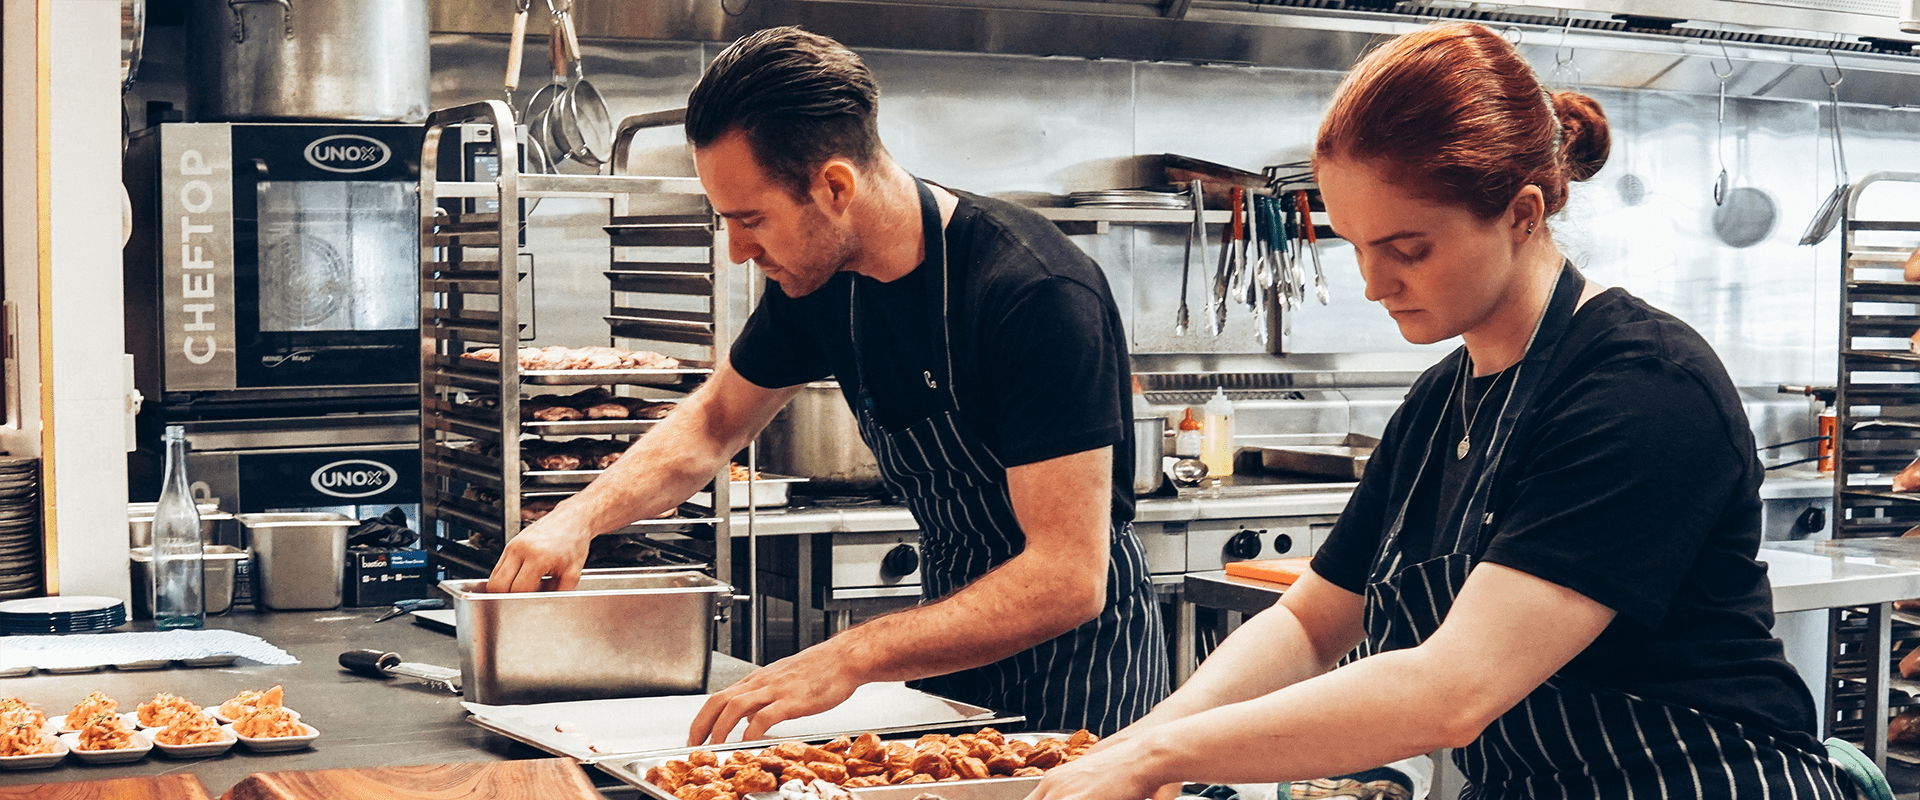 Five Keys to Prepping Content Like a Top Chef